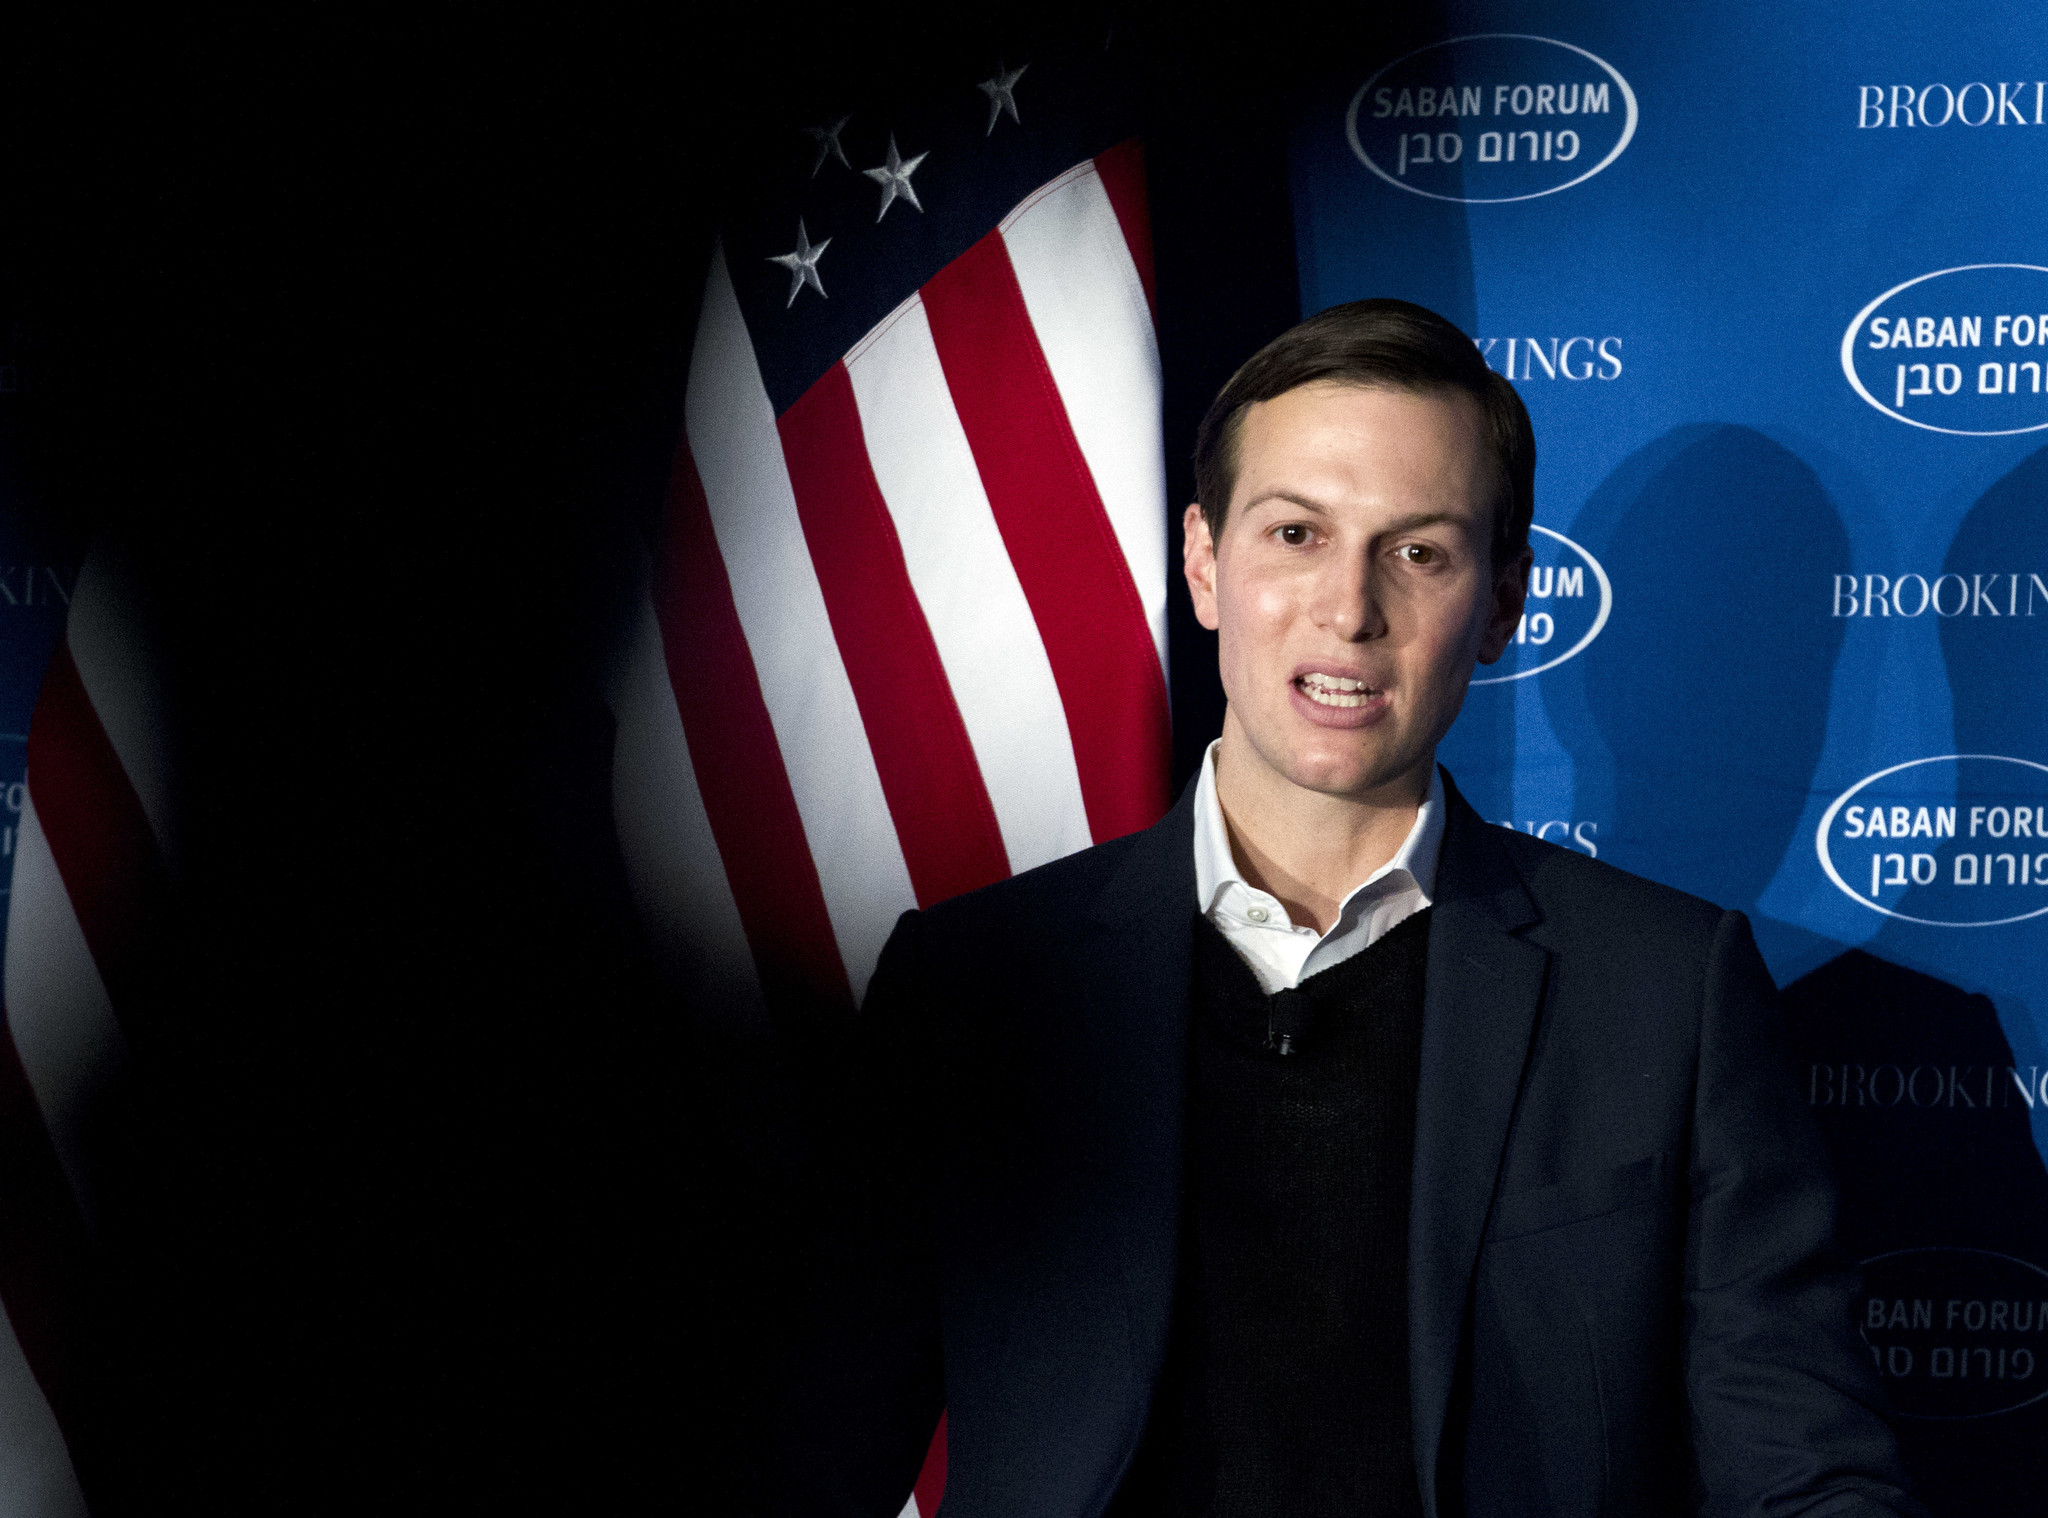 Russia investigation sheds new light on Jared Kushner's involvement with Moscow